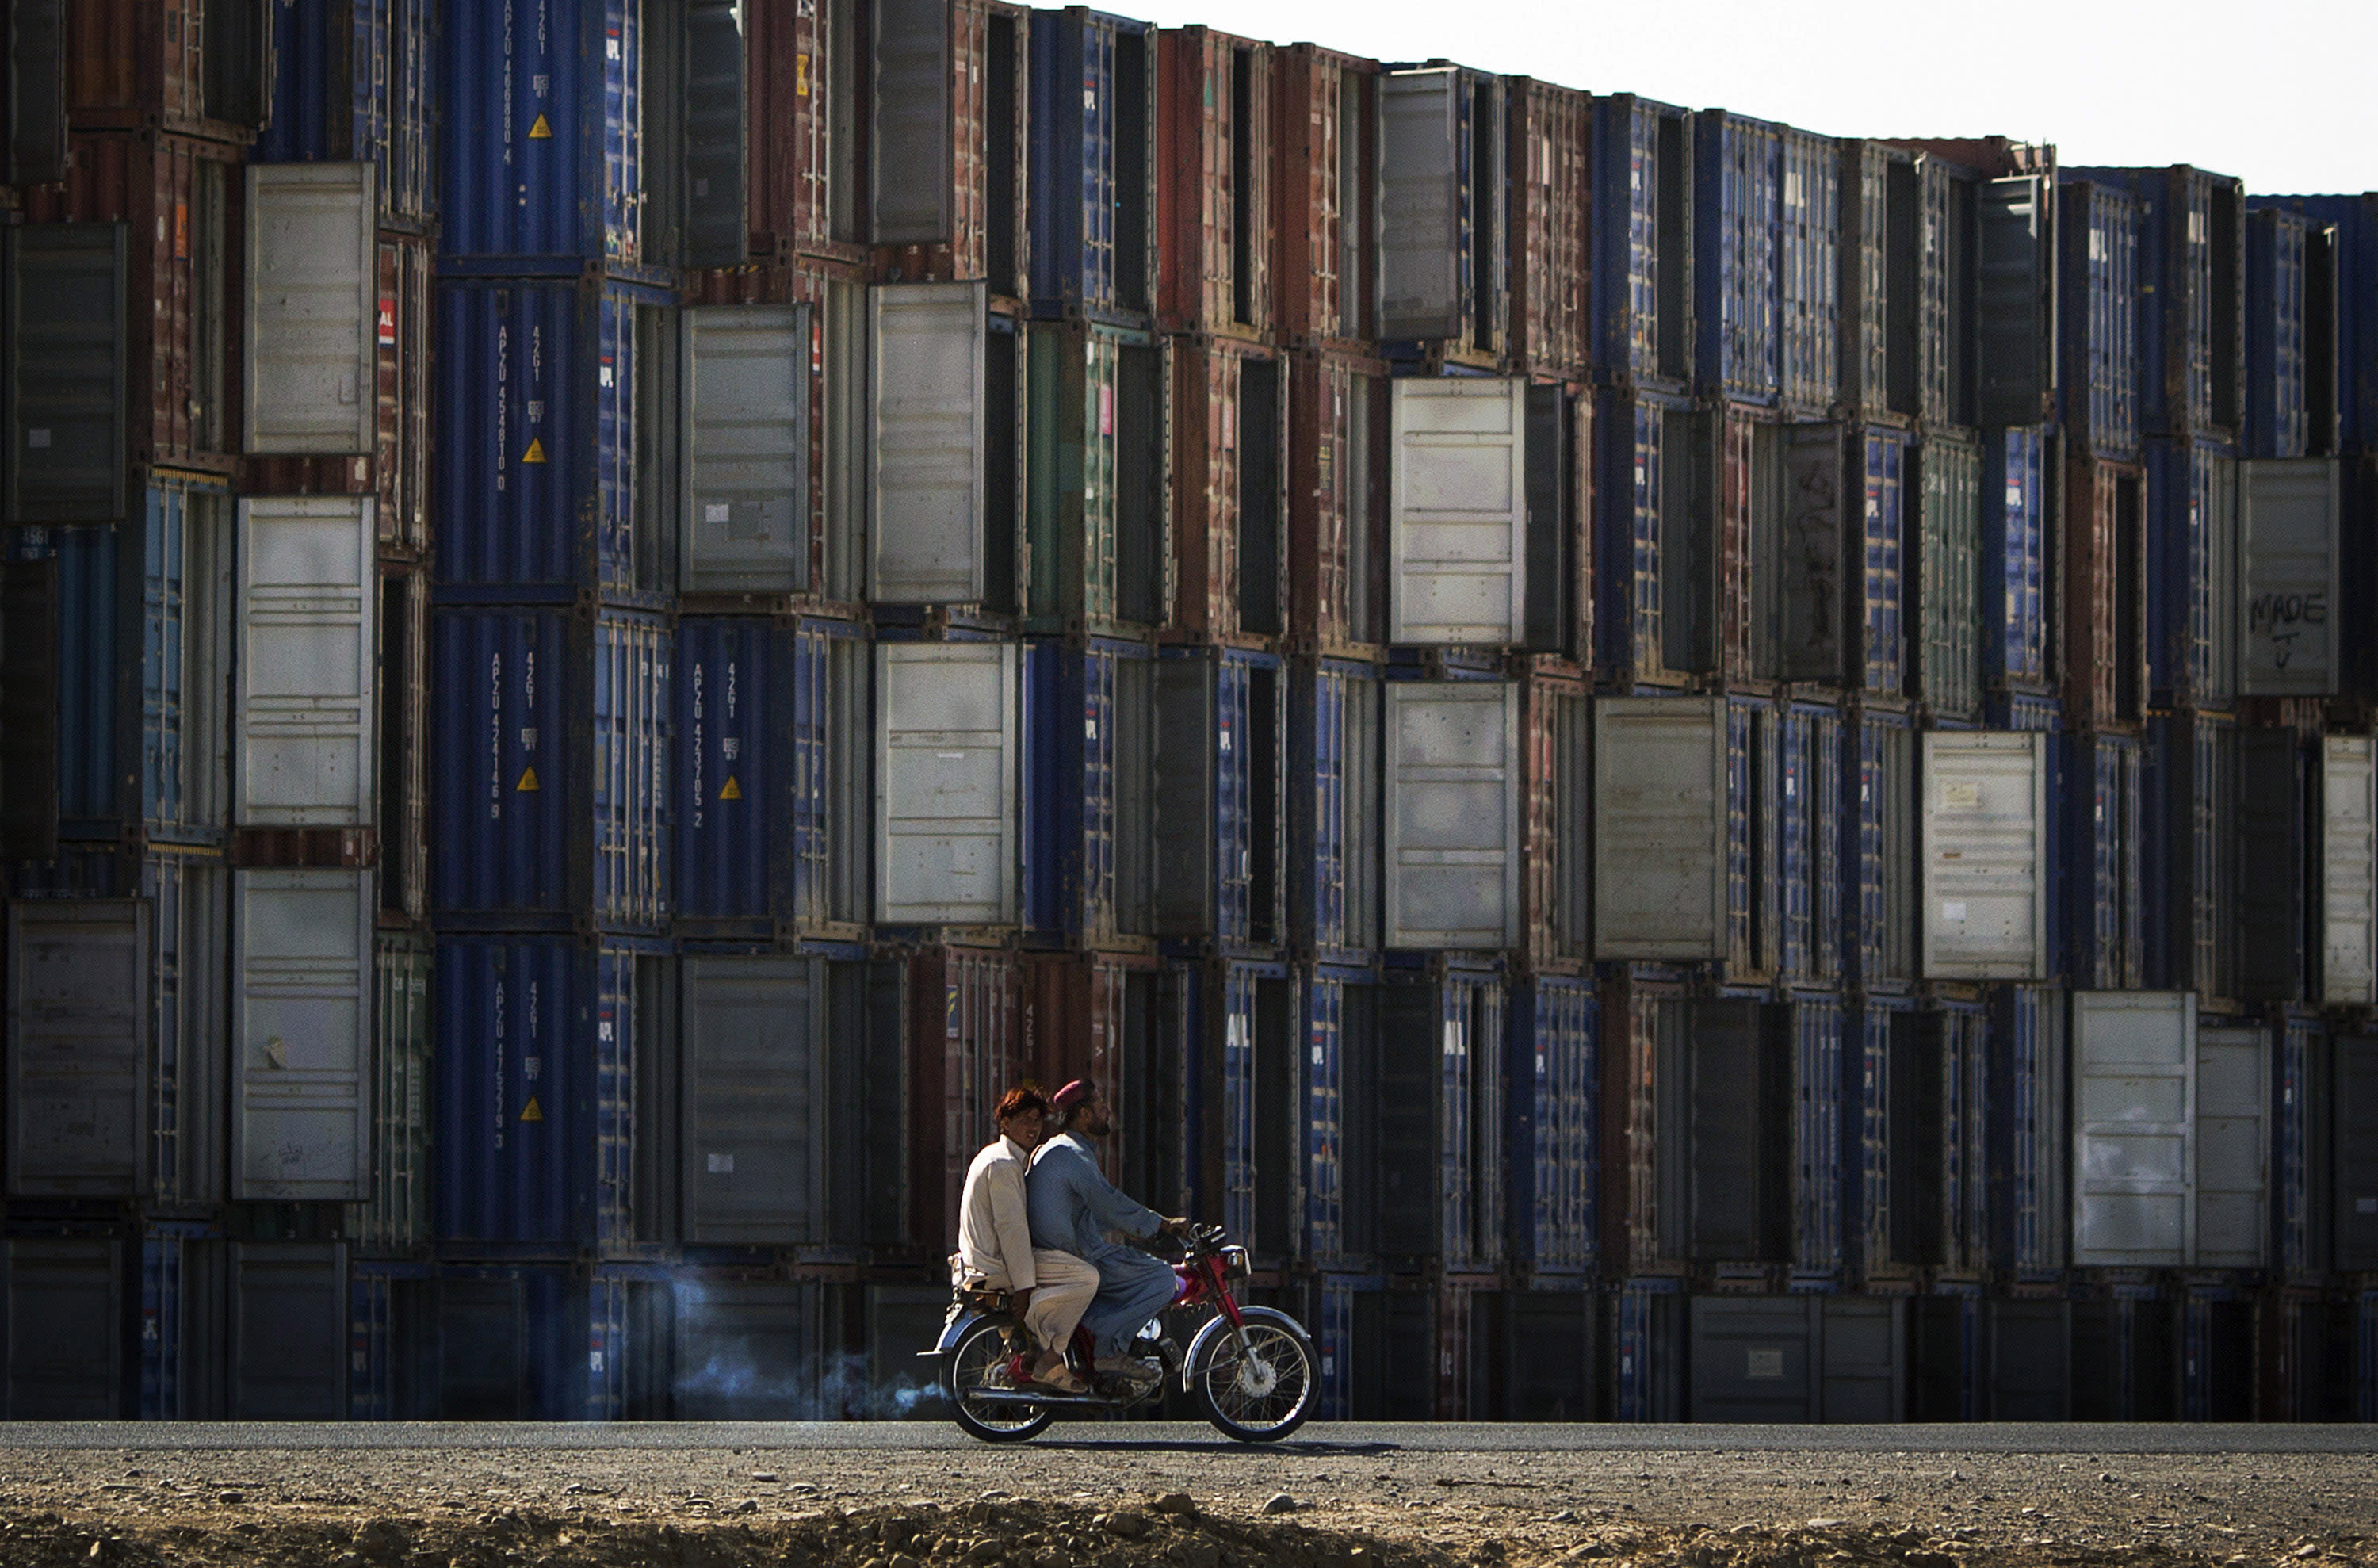 In this Monday, Oct. 28, 2013 photo, two Afghan men on a motorcycle drive by stacks of shipping containers belonging to the U.S. and NATO military in Kandahar, southern Afghanistan. Hundreds of shipping containers are being collected by Afghans, some of which will be eventually scrapped as U.S. and NATO troops prepare to withdrawal all its combat troops by the end of 2014. (AP Photo/Anja Niedringhaus)